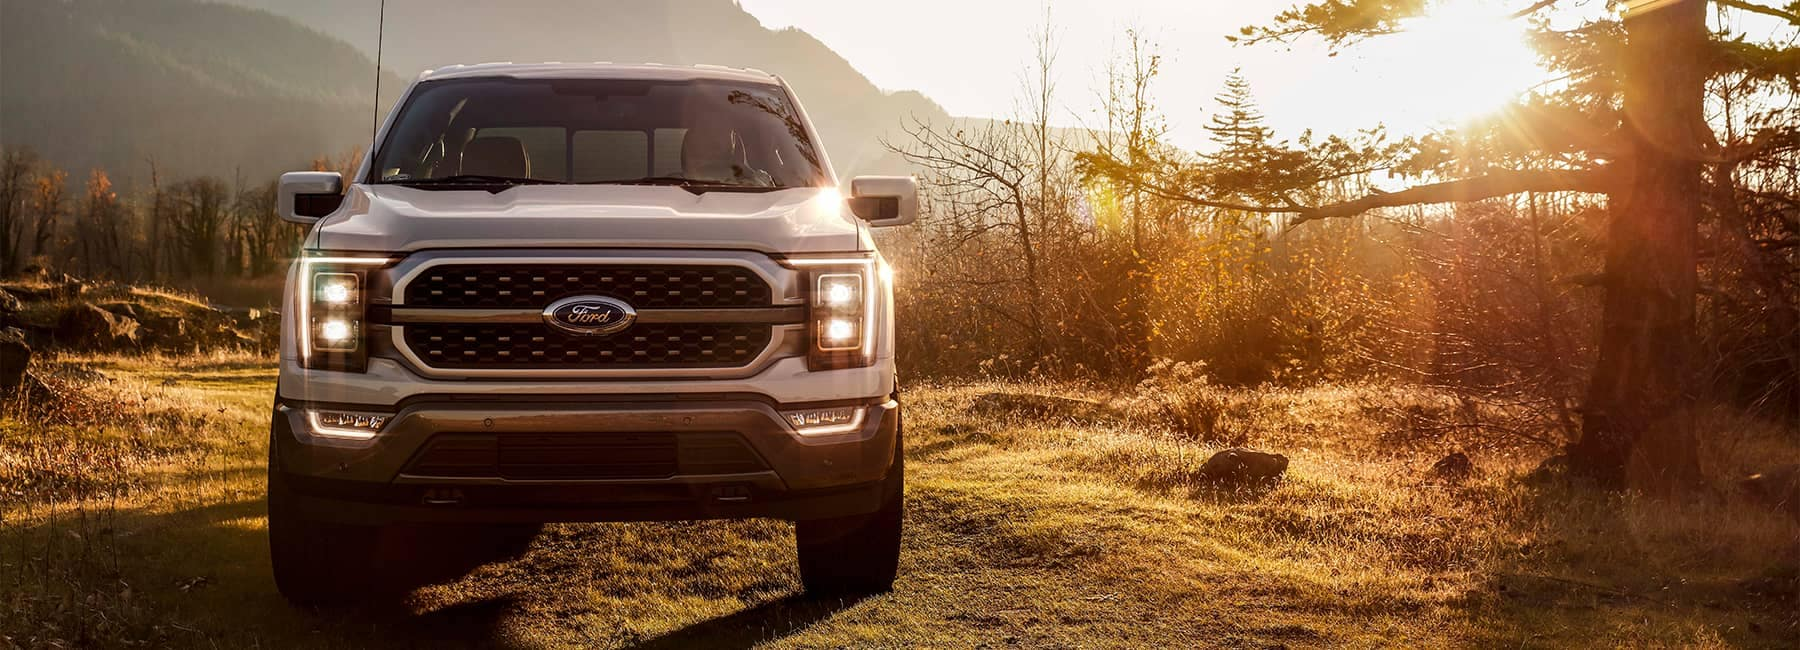 A silver 2021 Ford F150 parked in on a wooded trail at sunset